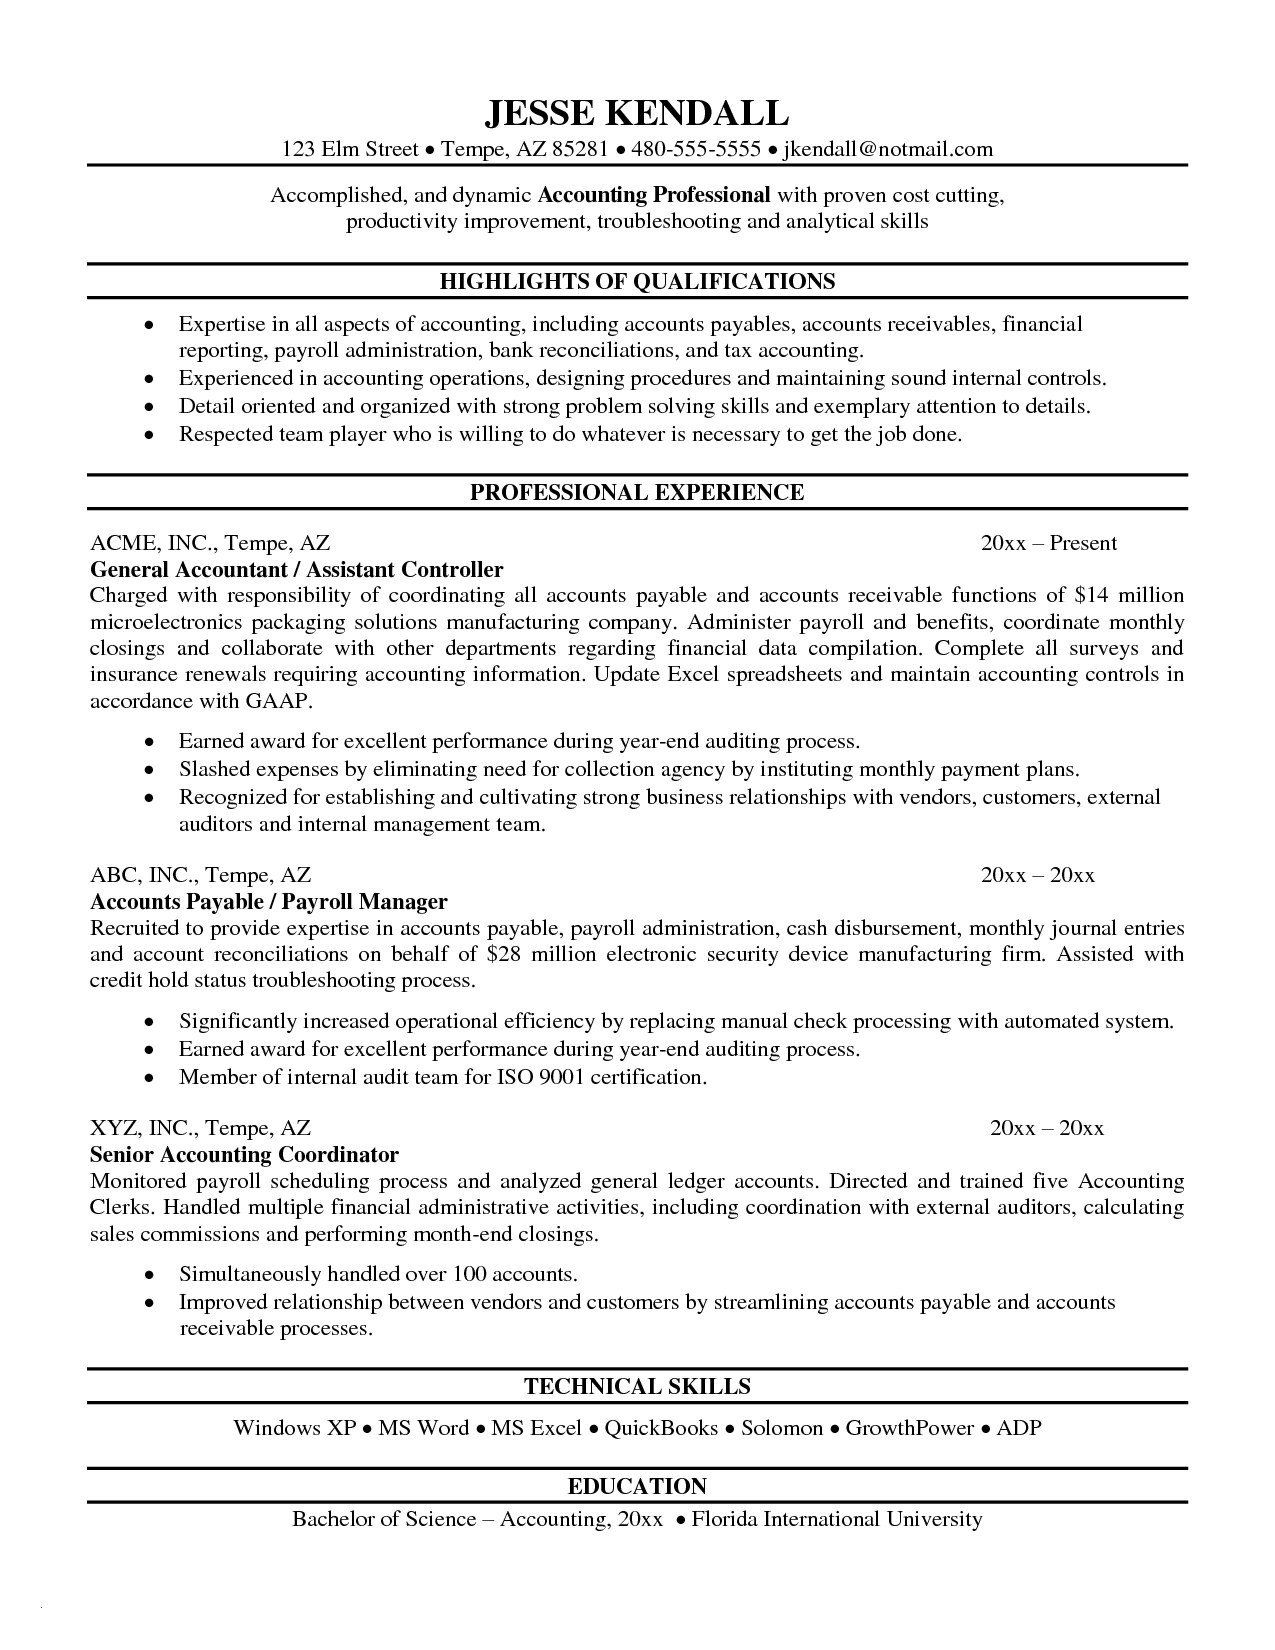 system admin resume example new problem solving skills examples grade accountant Resume Troubleshooting Skills Resume